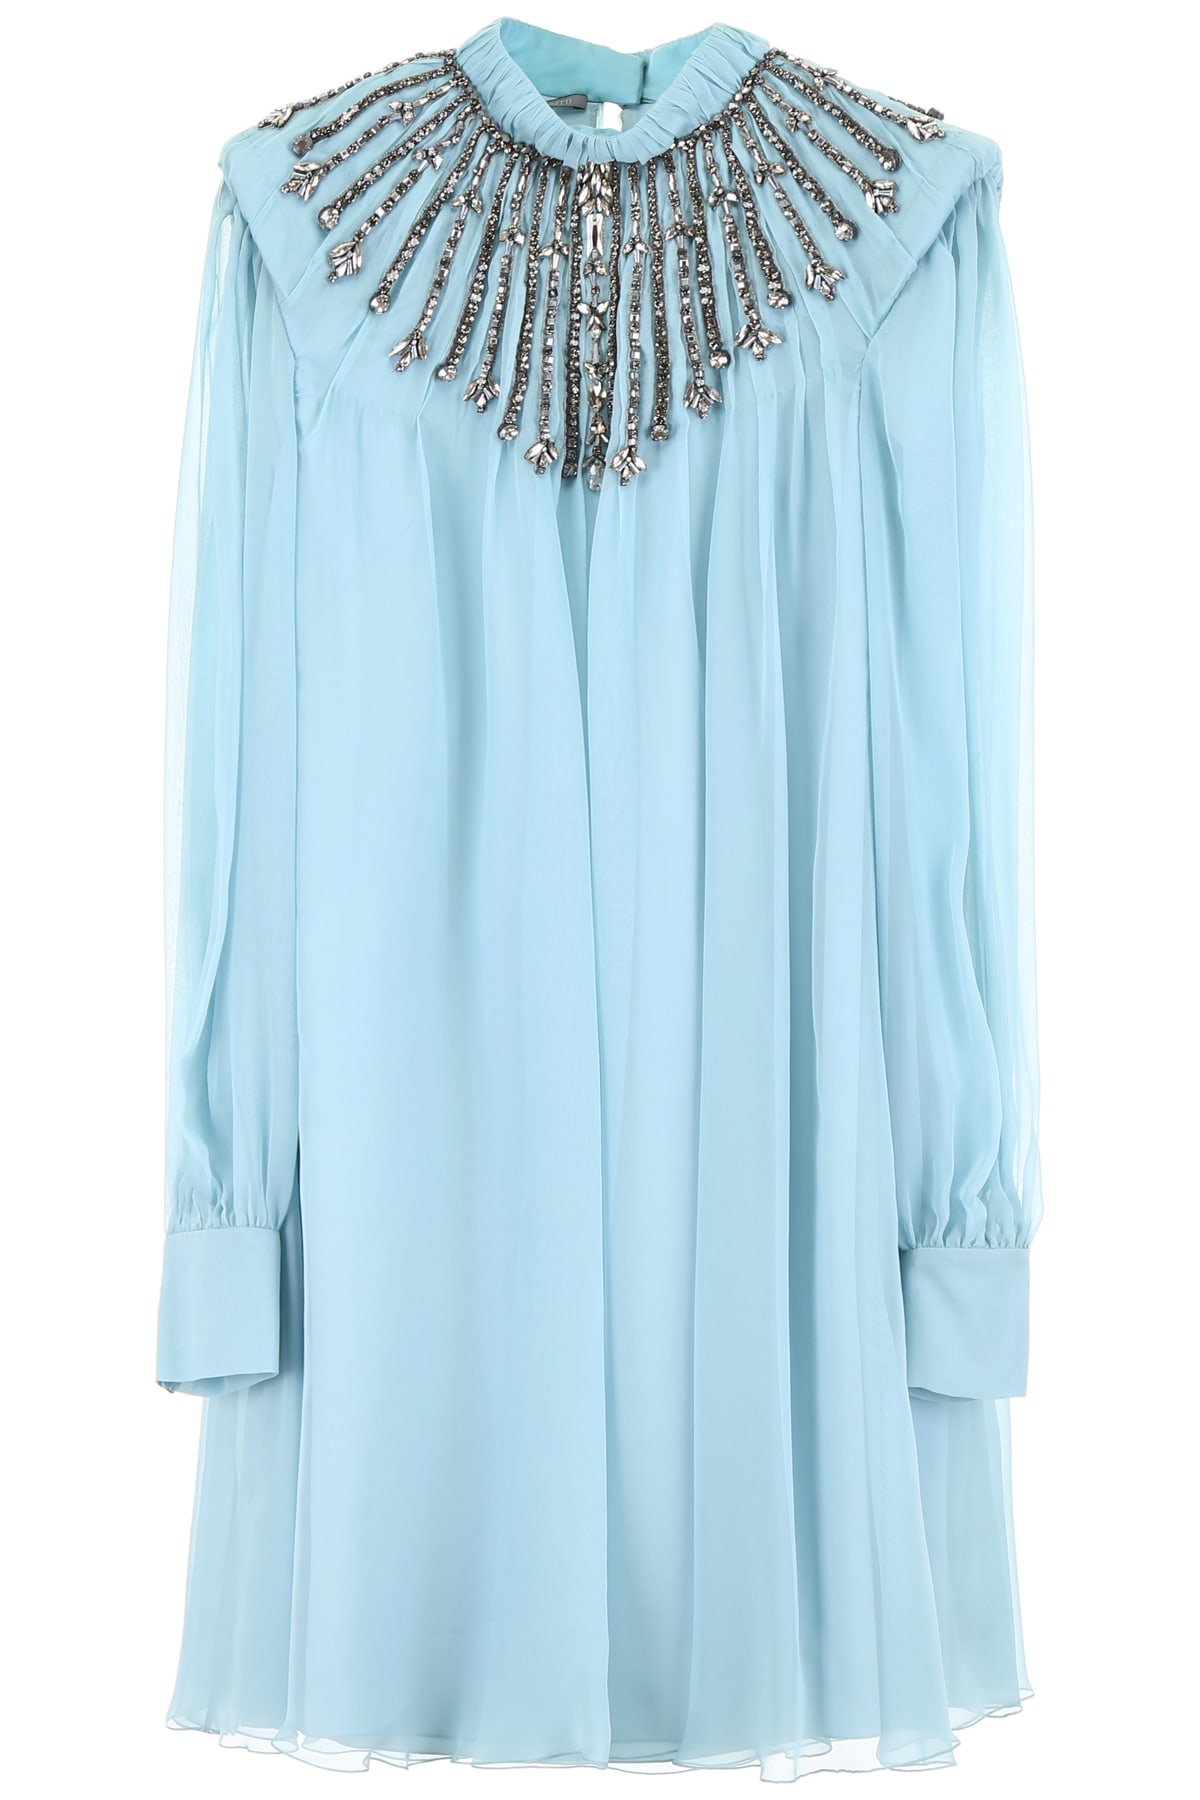 Alberta Ferretti Dress With Crystals